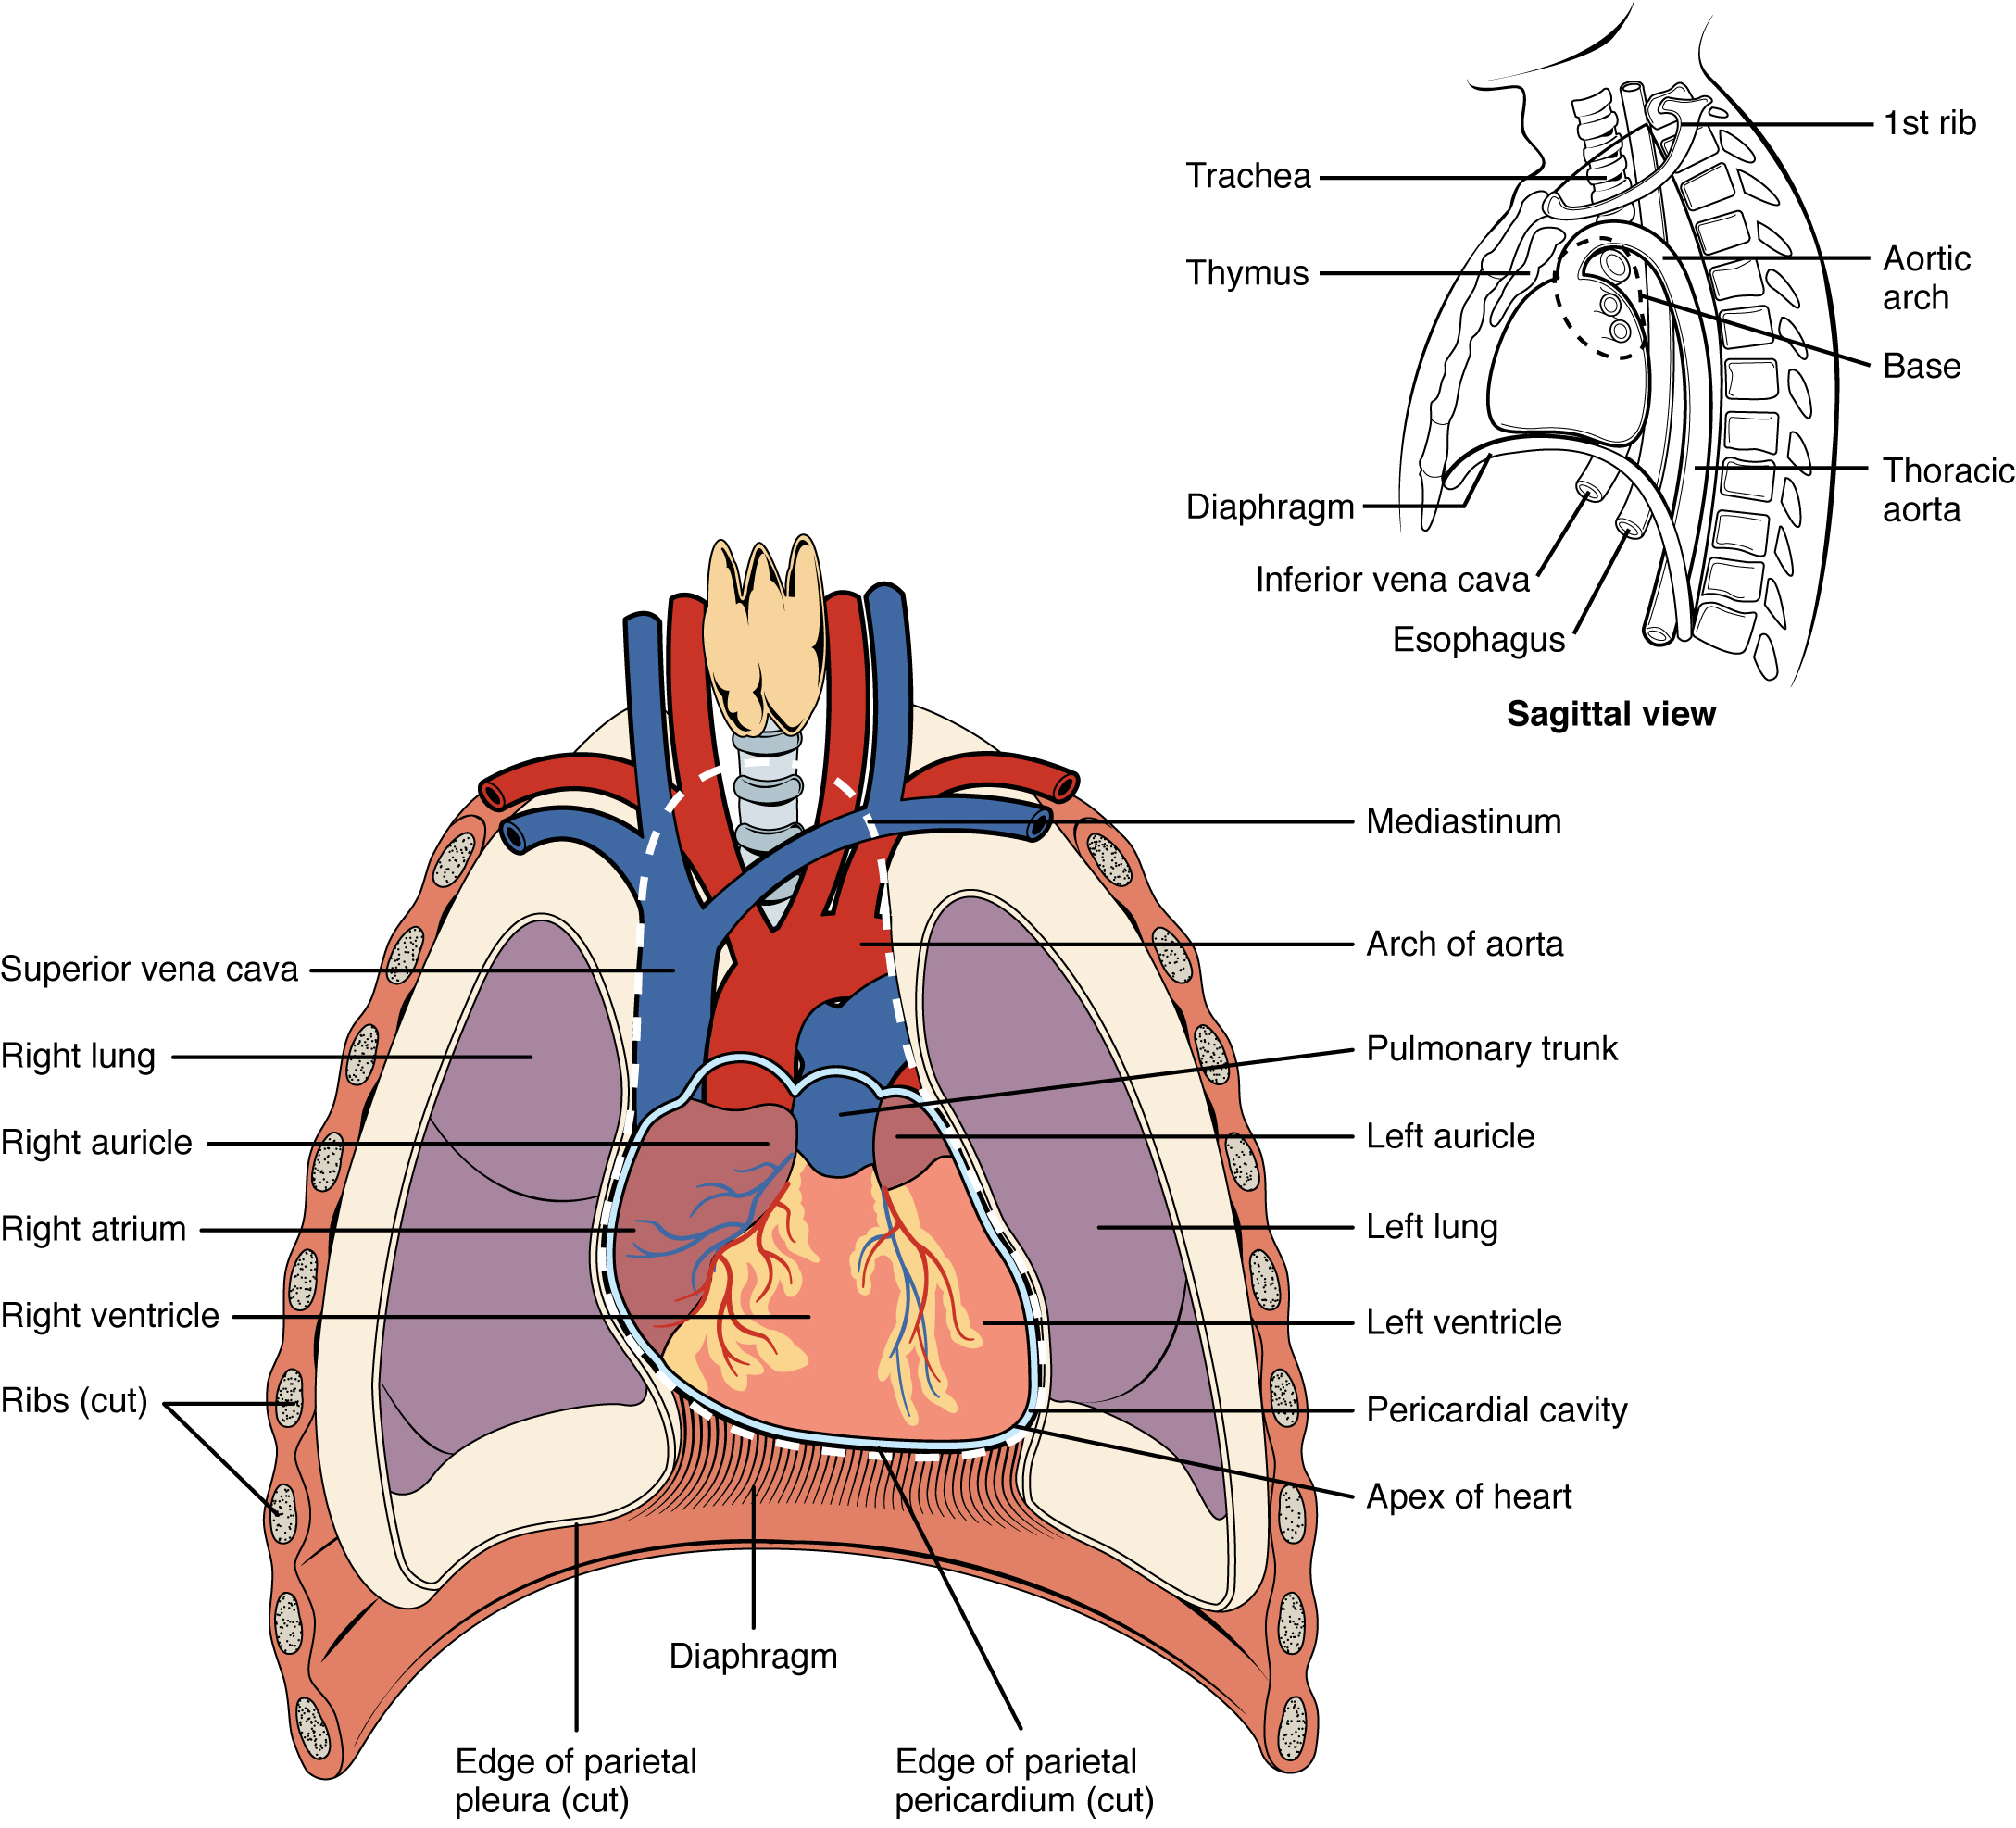 Cardiovascular System Contemporary Health Issues